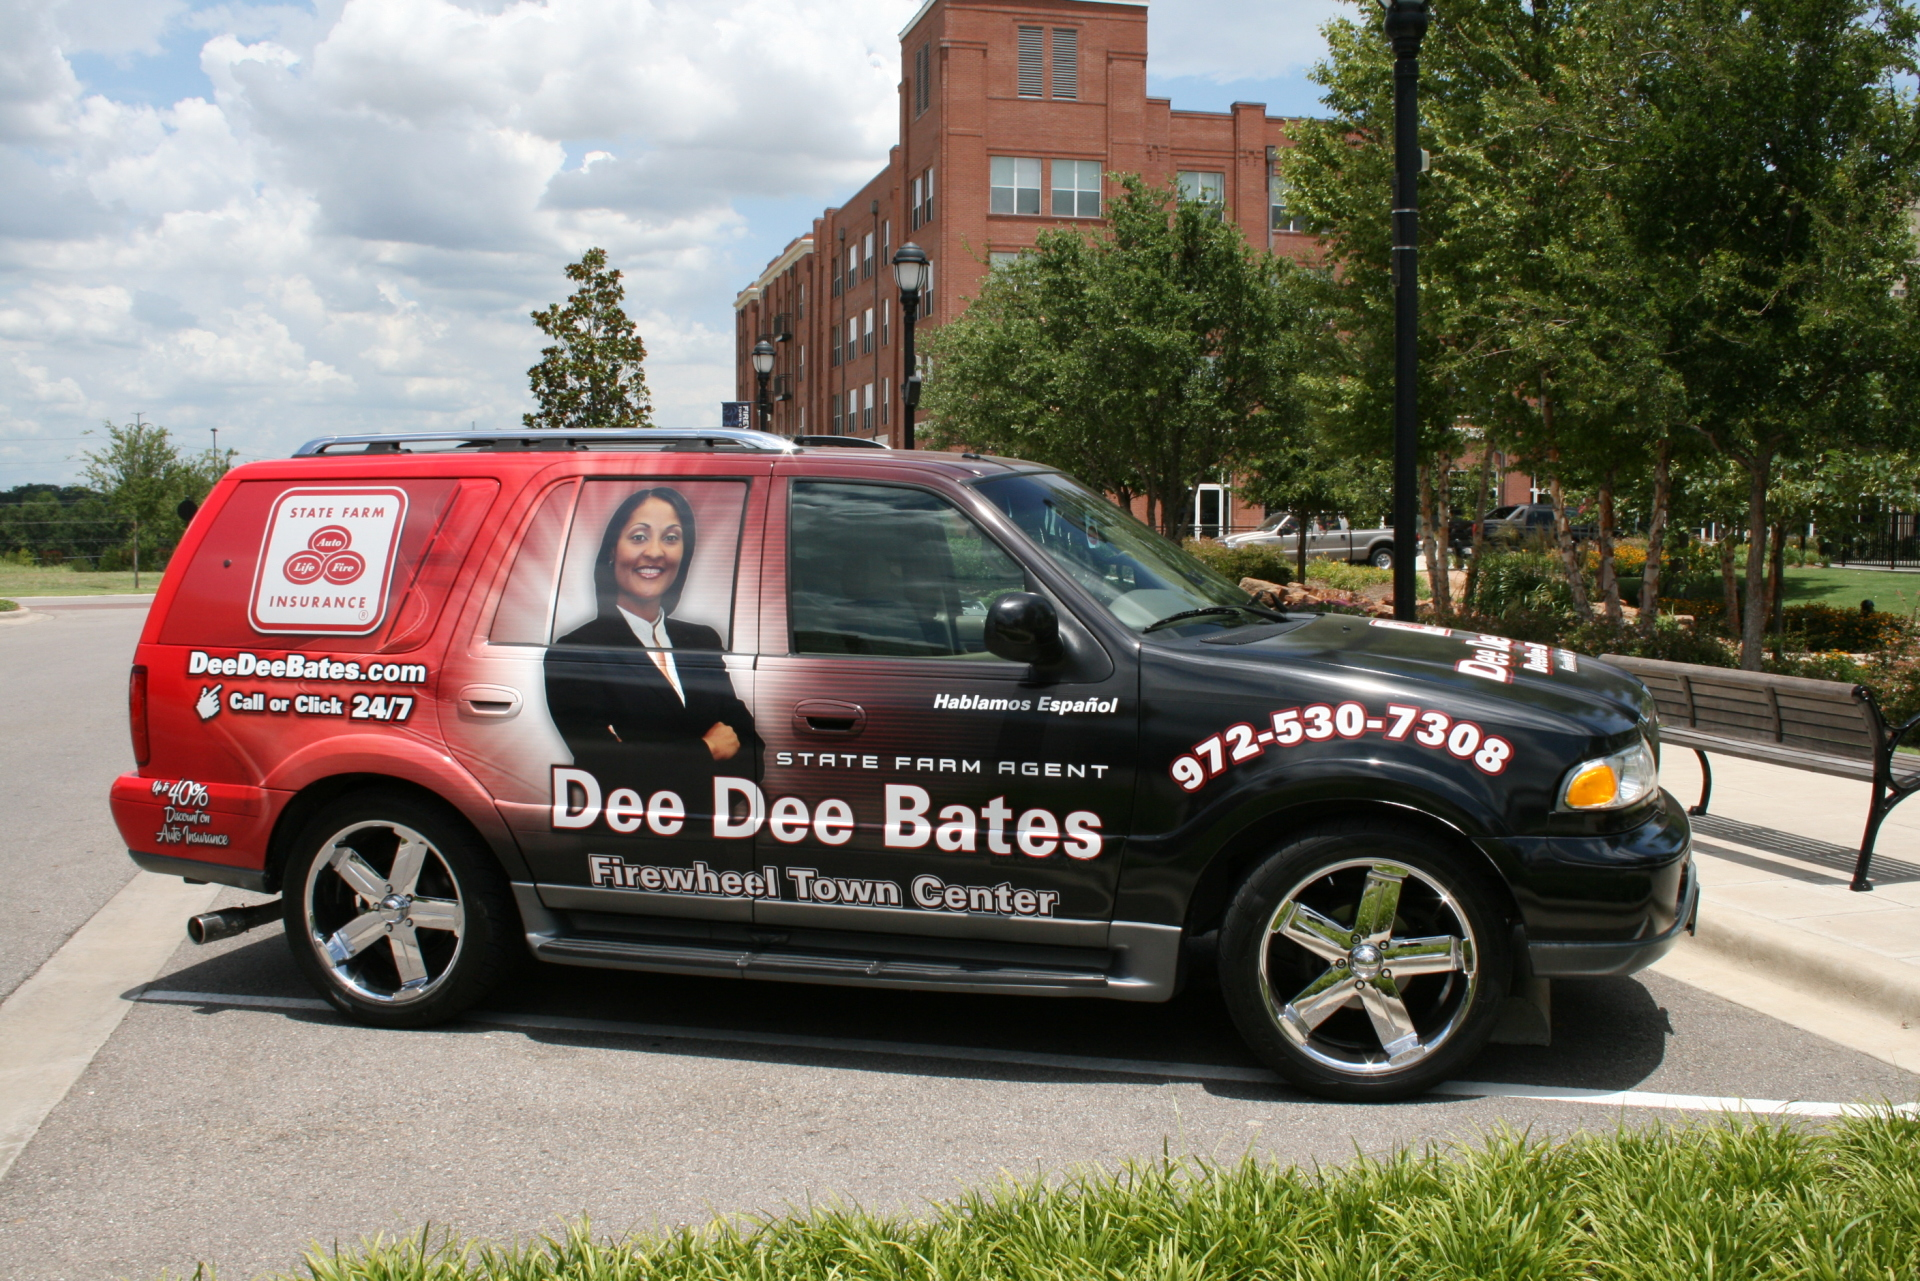 State Farm Agent Dee Dee Bates, State Farm Vehicle wraps, vehicle wrap dallas tx